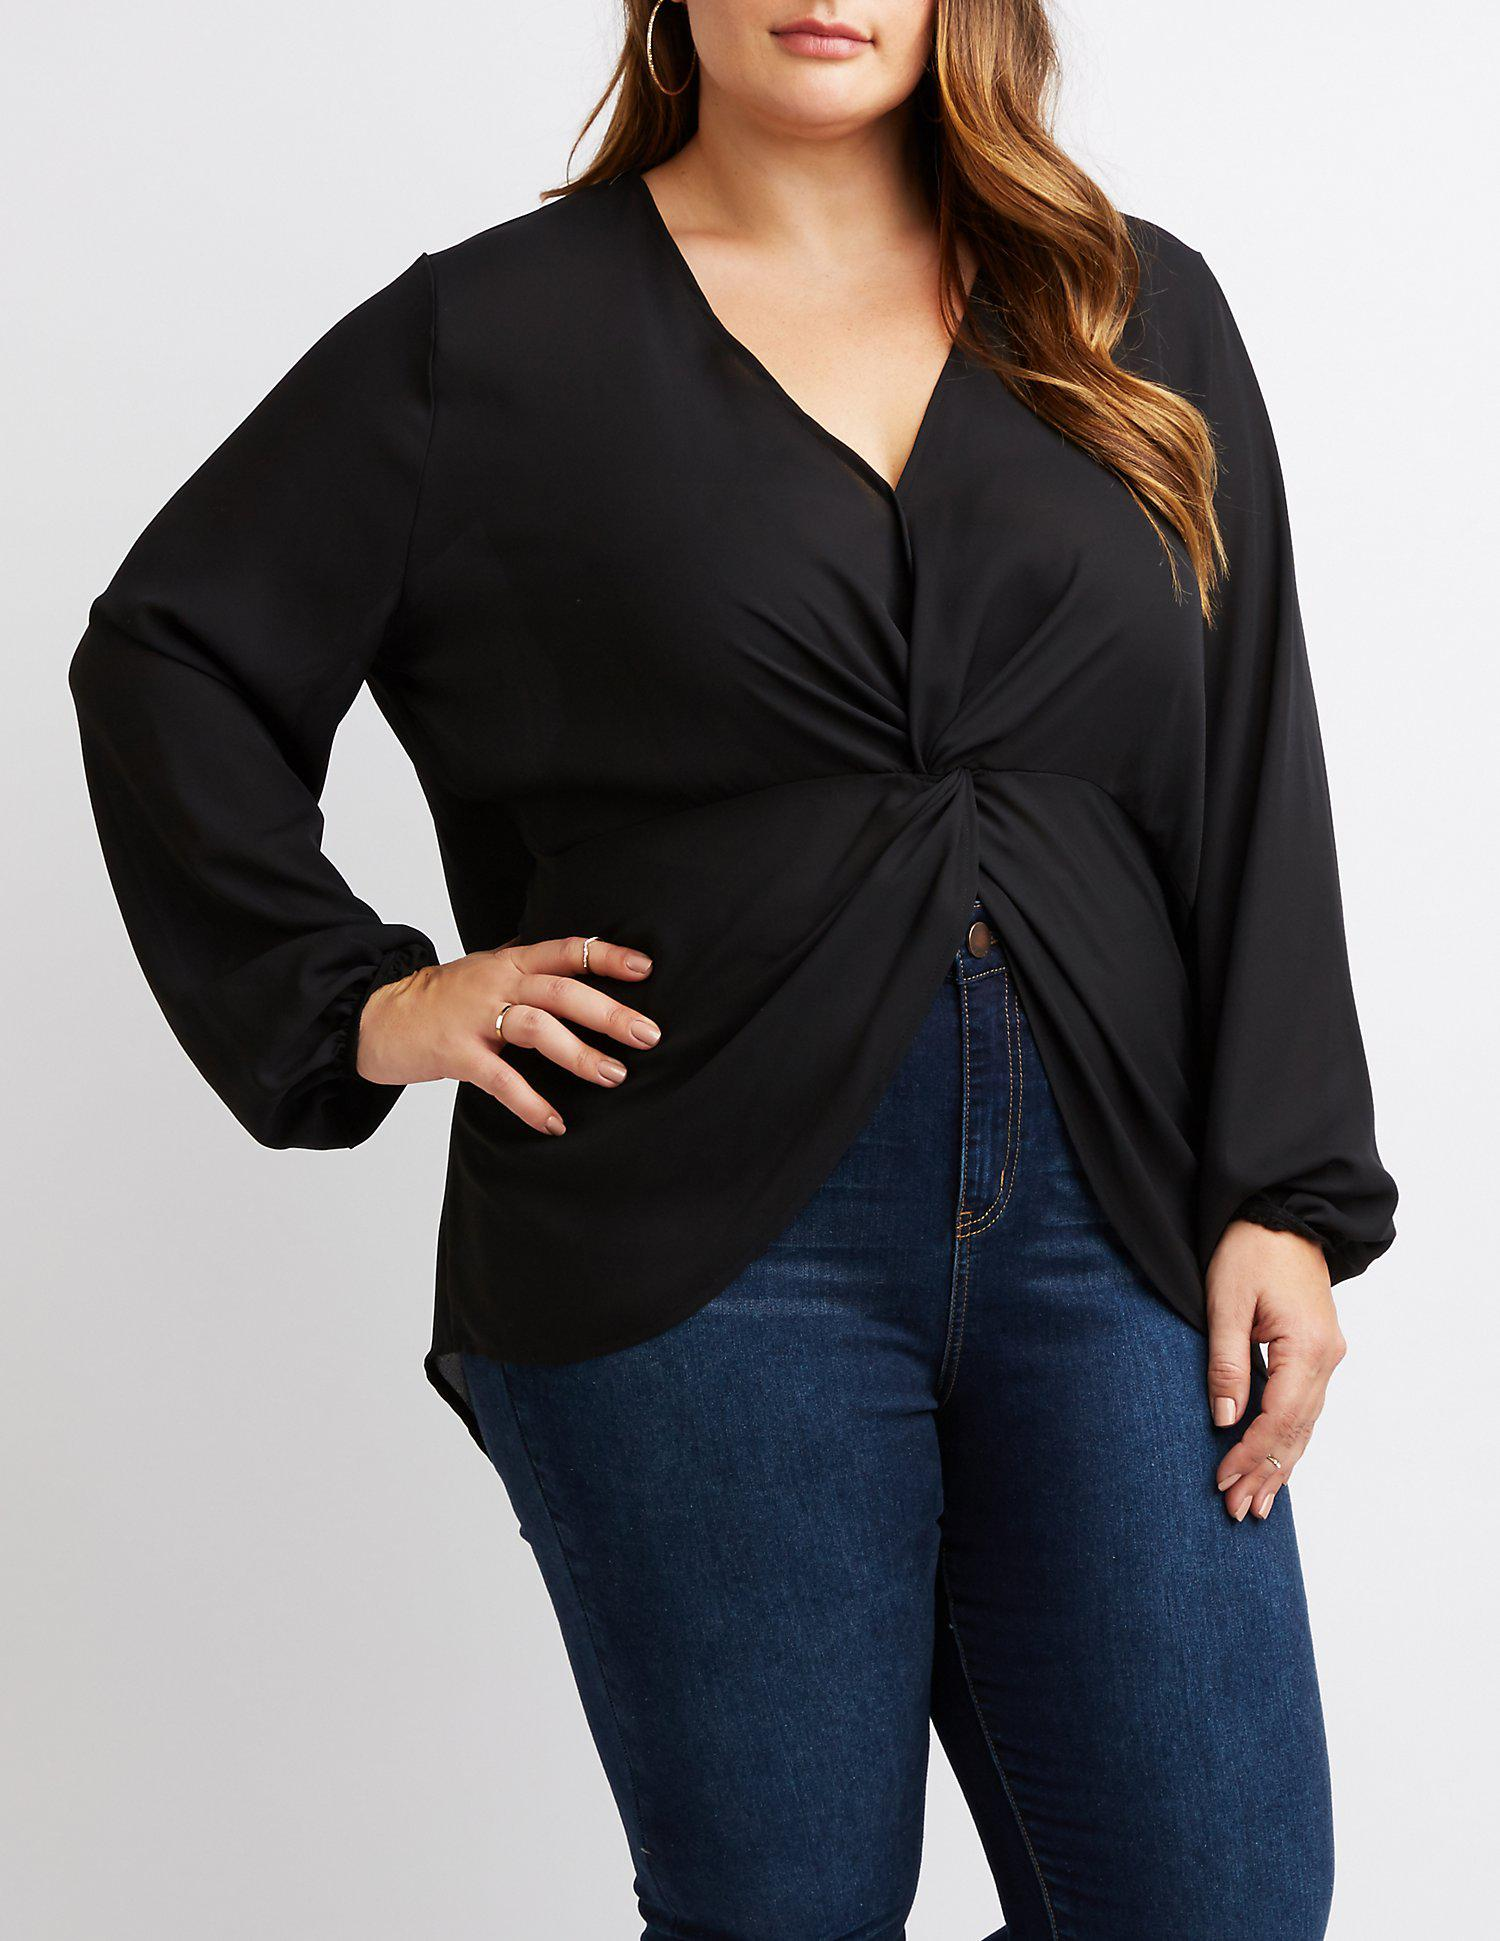 59cdfc0040a Lyst - Charlotte Russe Plus Size Knotted High-low Tunic Top in Black ...